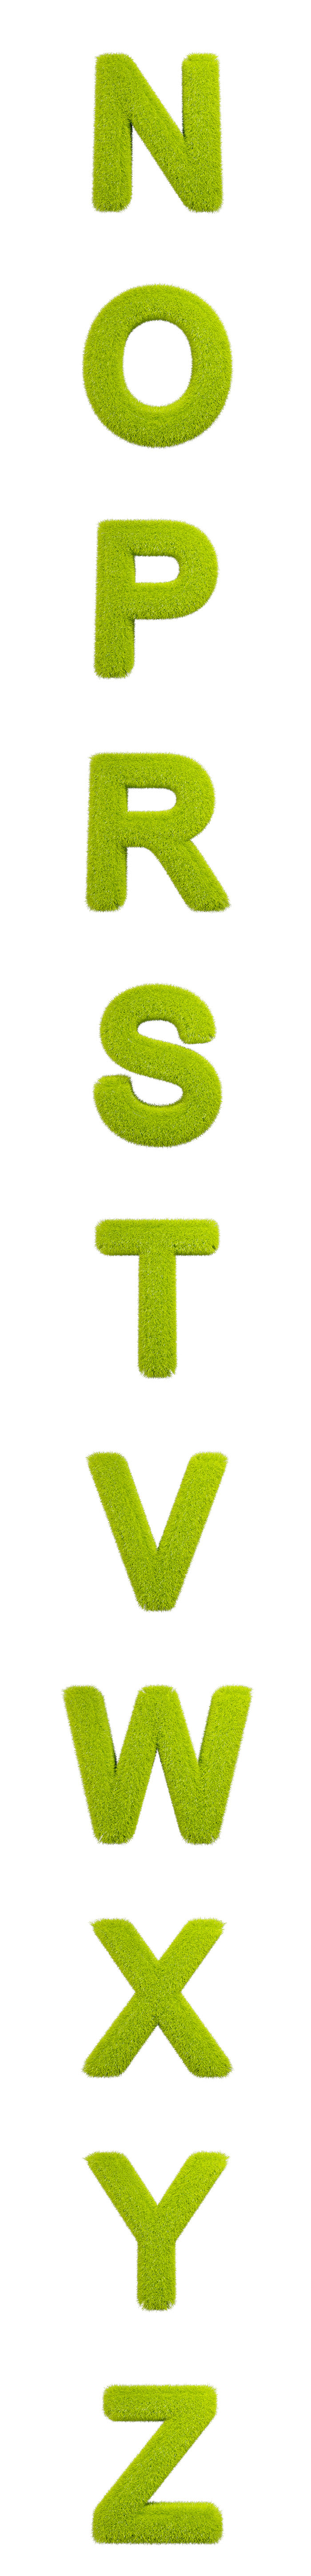 Full Grass Alphabet Isolated Letters-2